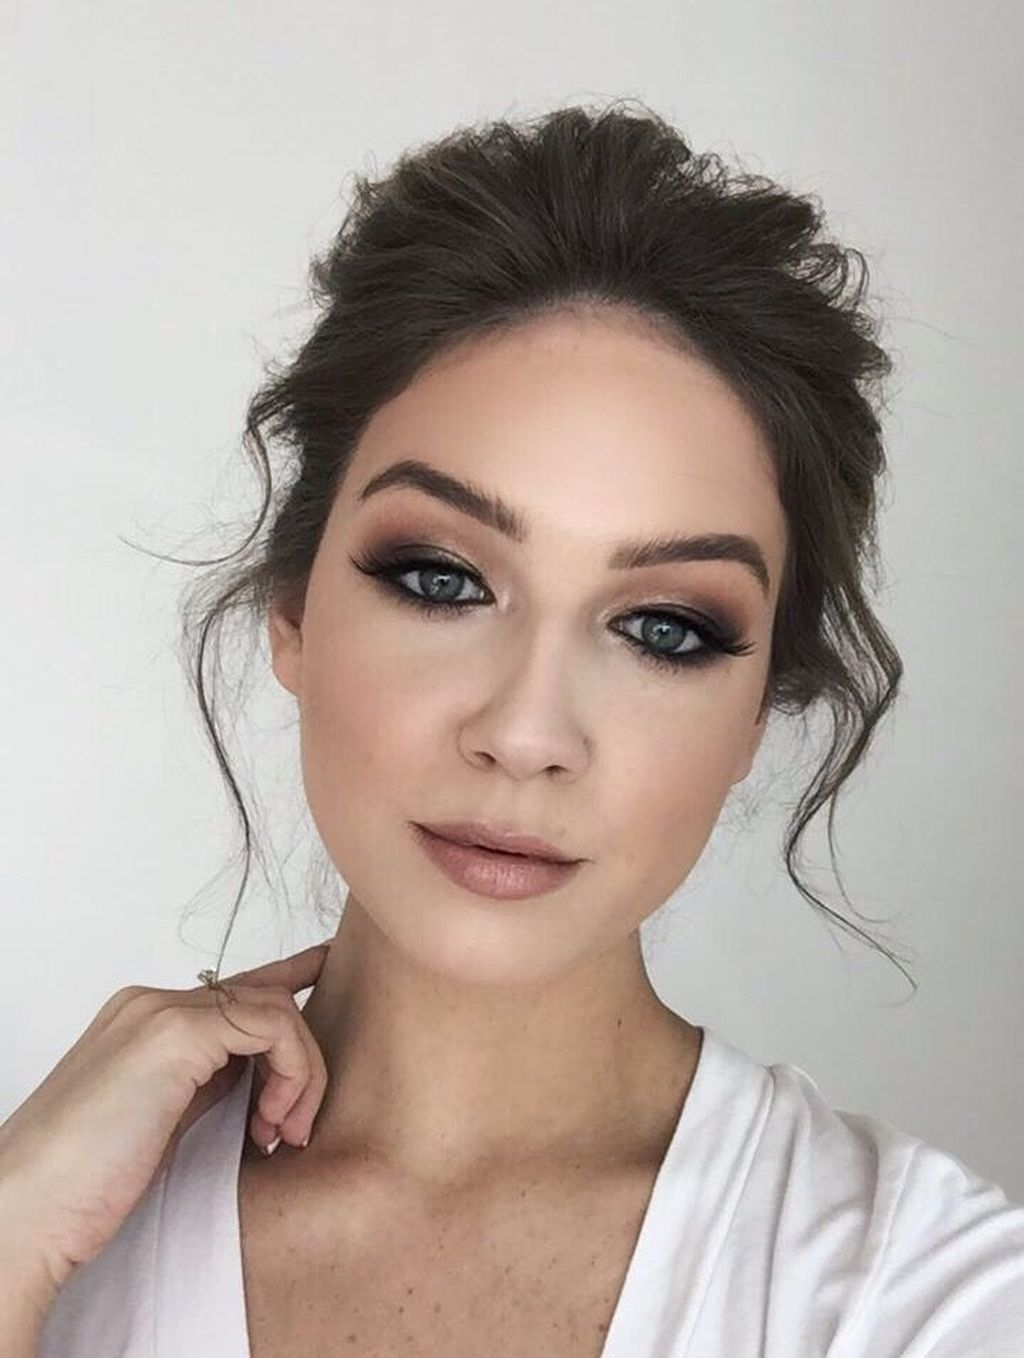 46 Simple Eye Makeup Ideas For Daily Work Fryzury panny